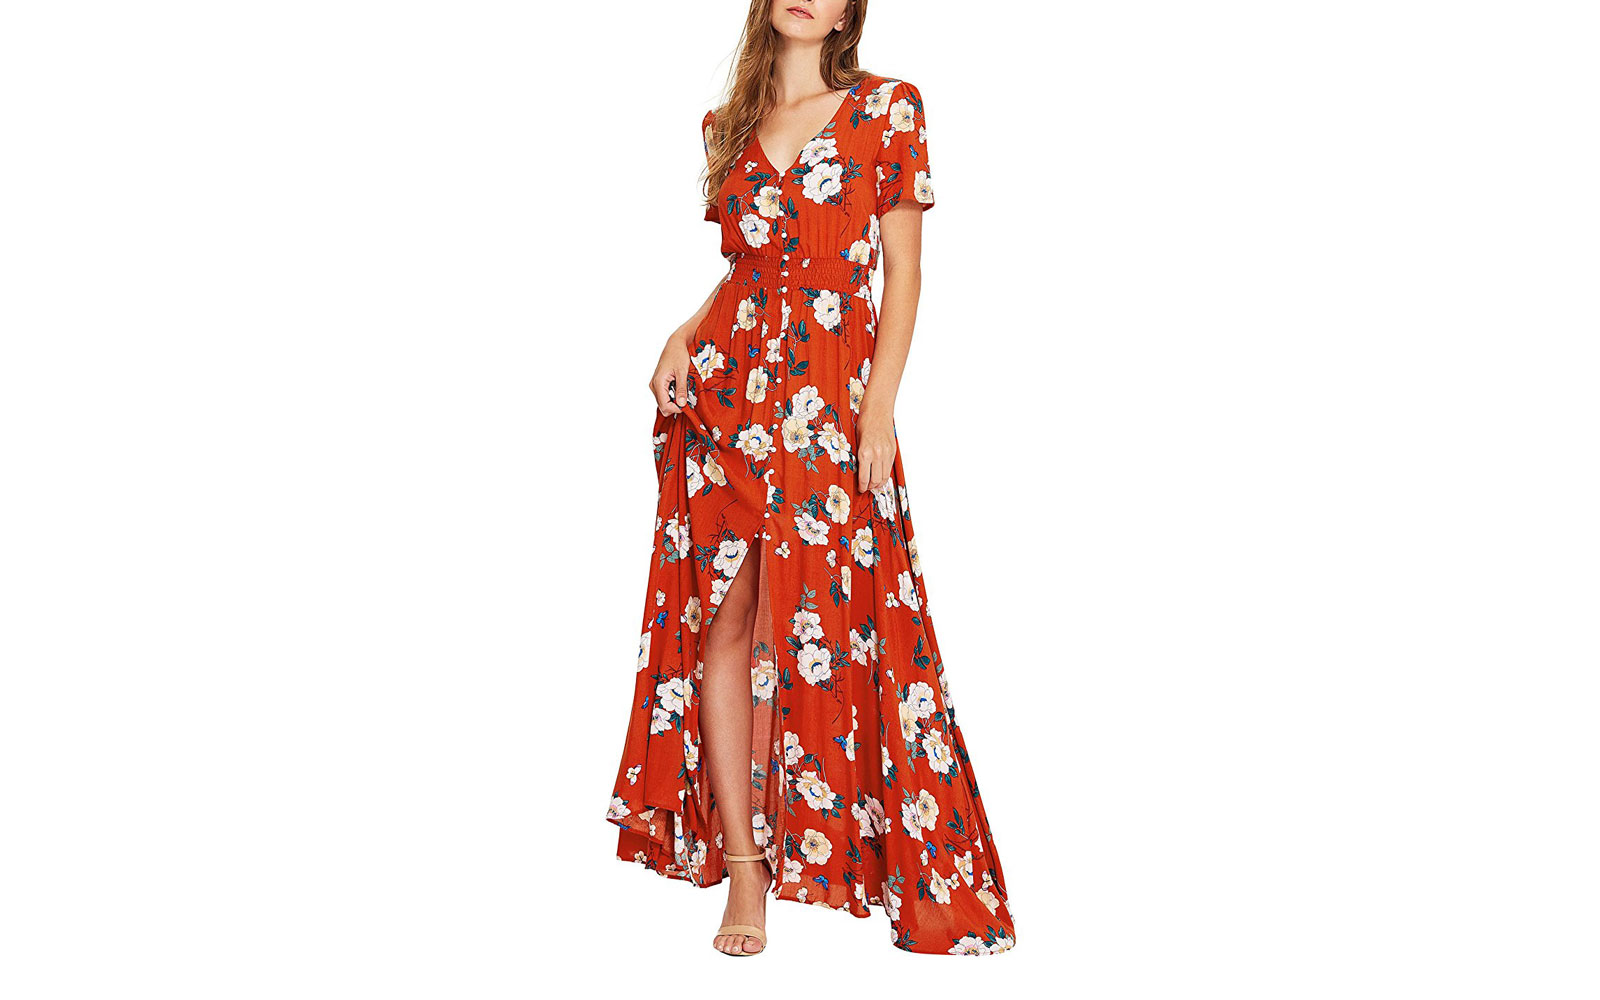 ff5f43806aa24 15 Breezy Maxi Dresses You'll Be Wearing On Repeat This Summer ...